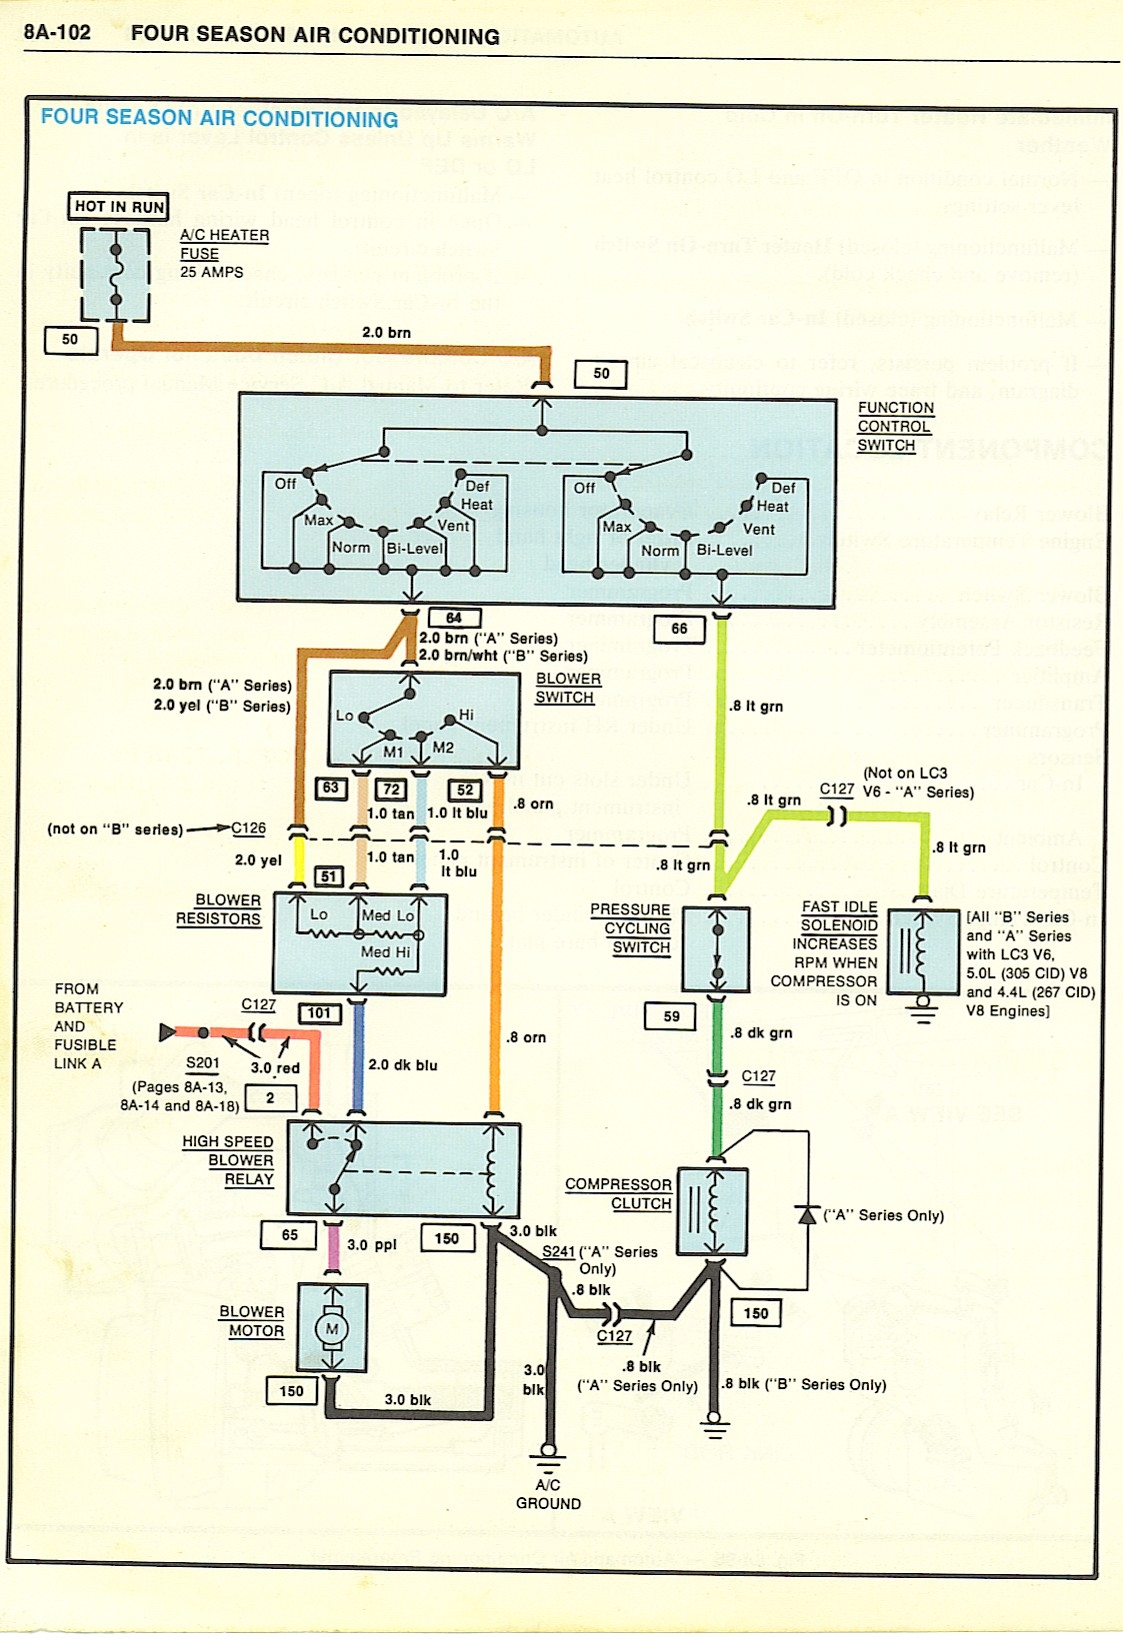 1968 Amx Tachometer Wiring Diagram Chevy Diagrams Camero A C Drawing